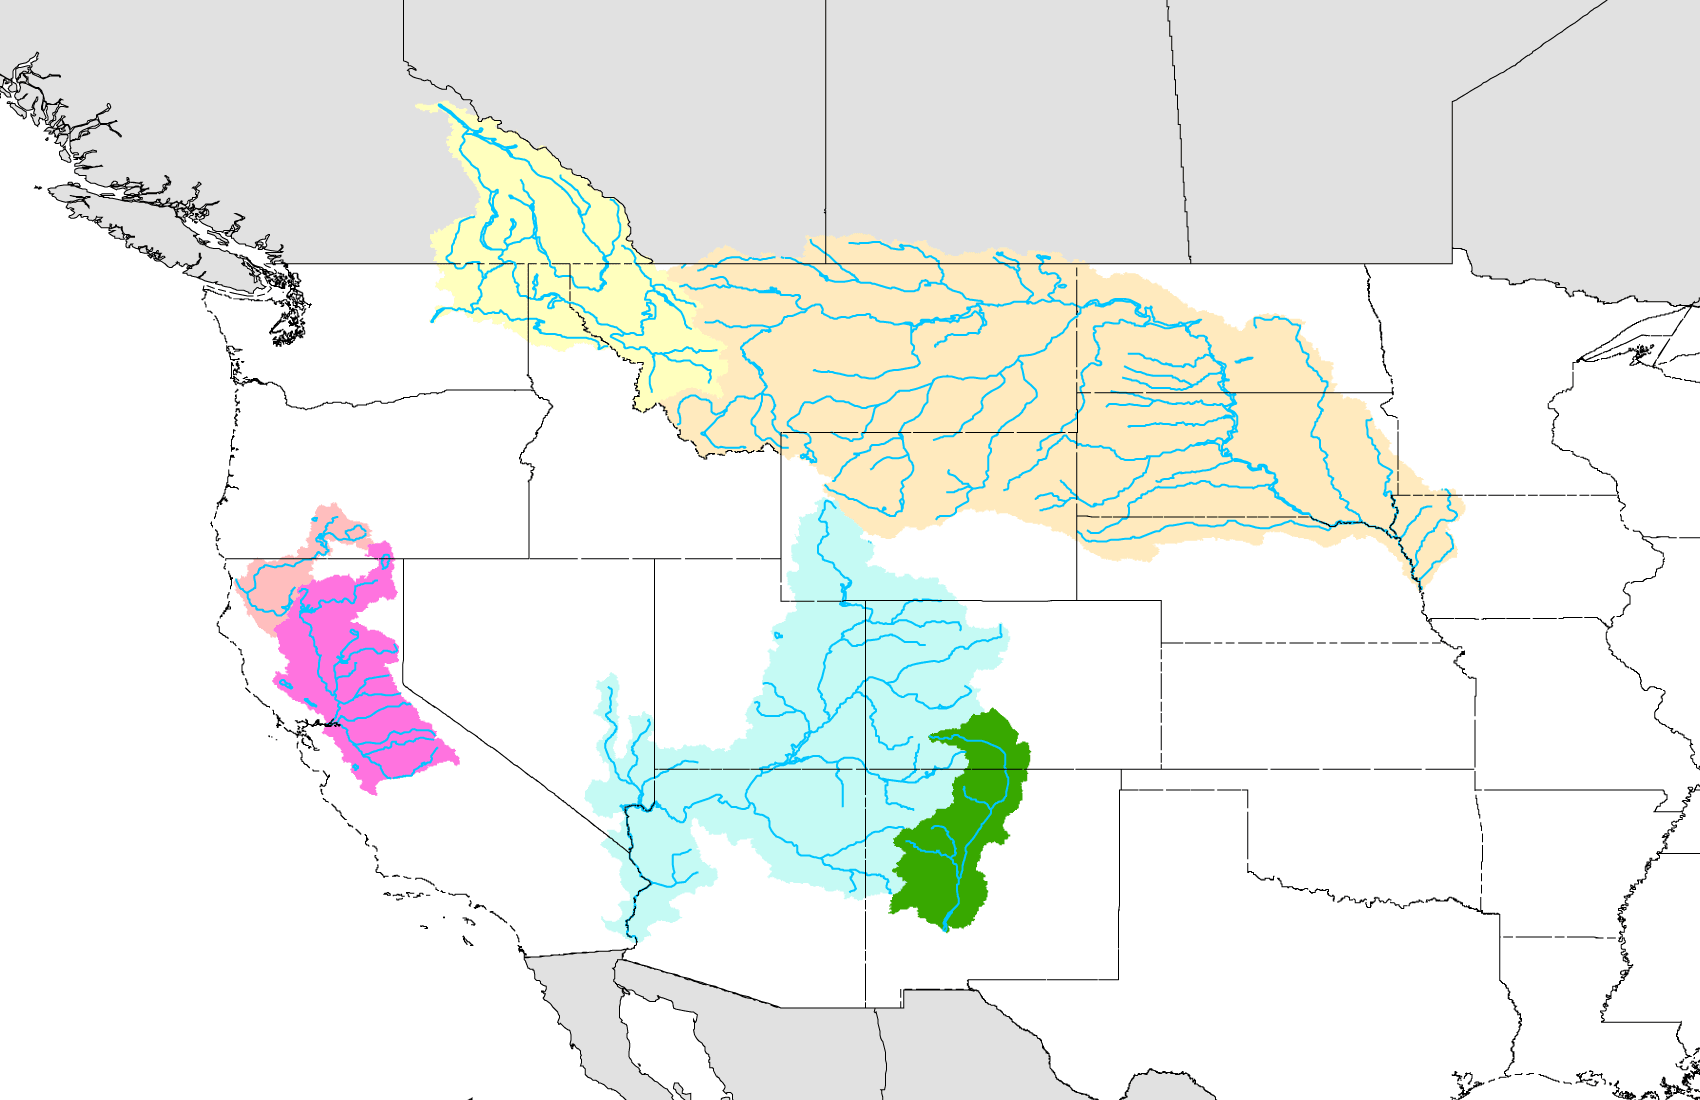 Streamflow Projections For River Basins In The Western US - Western us river map